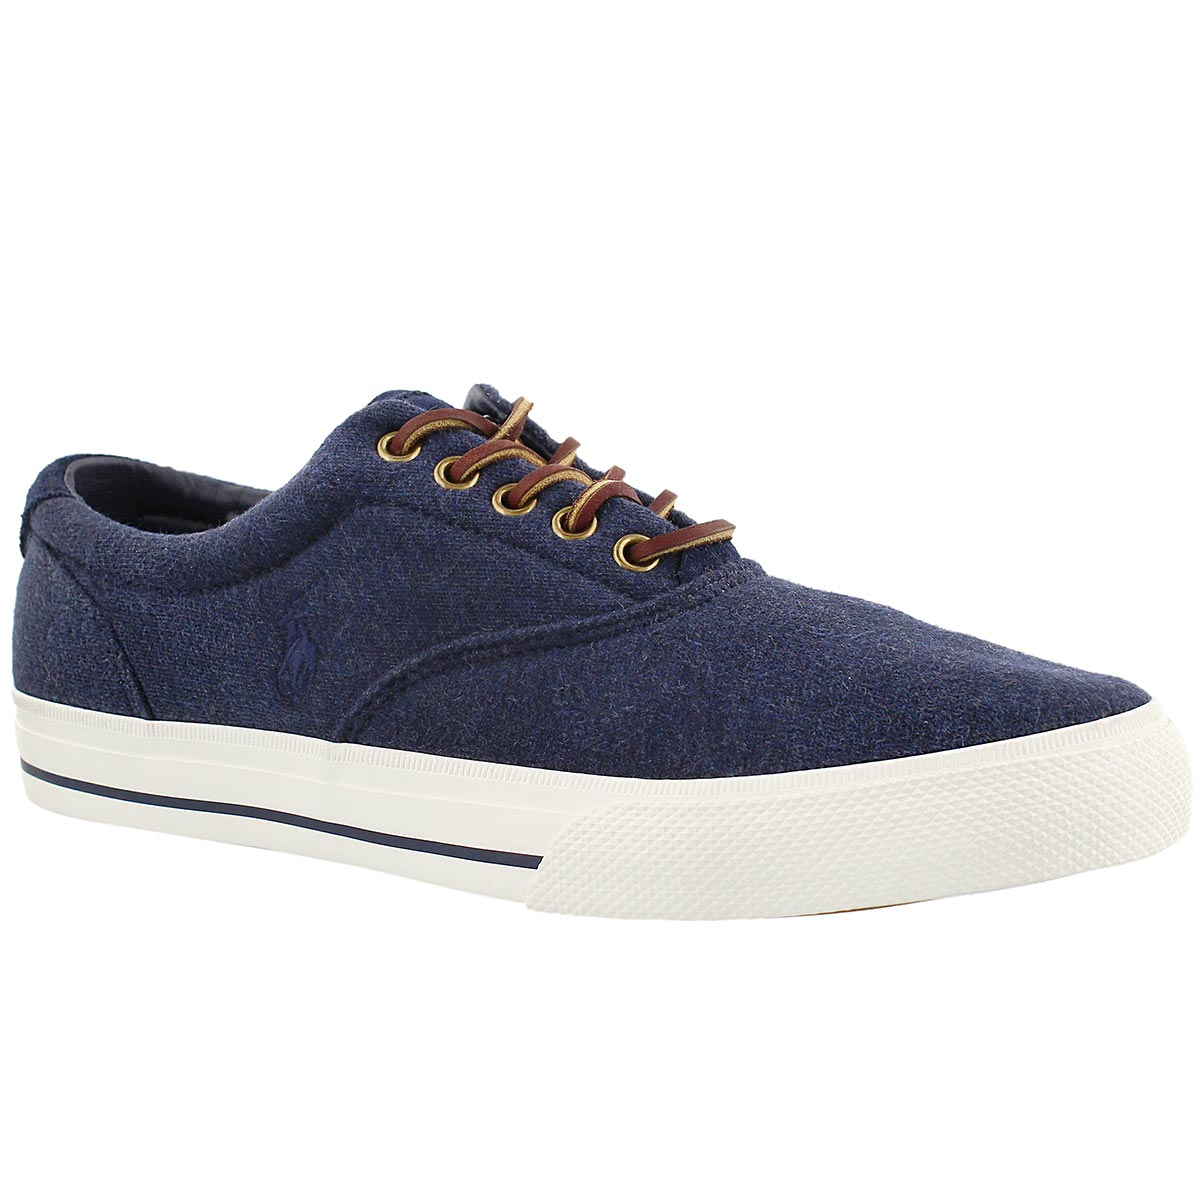 Men's VAUGHN dark blue fleece sneakers